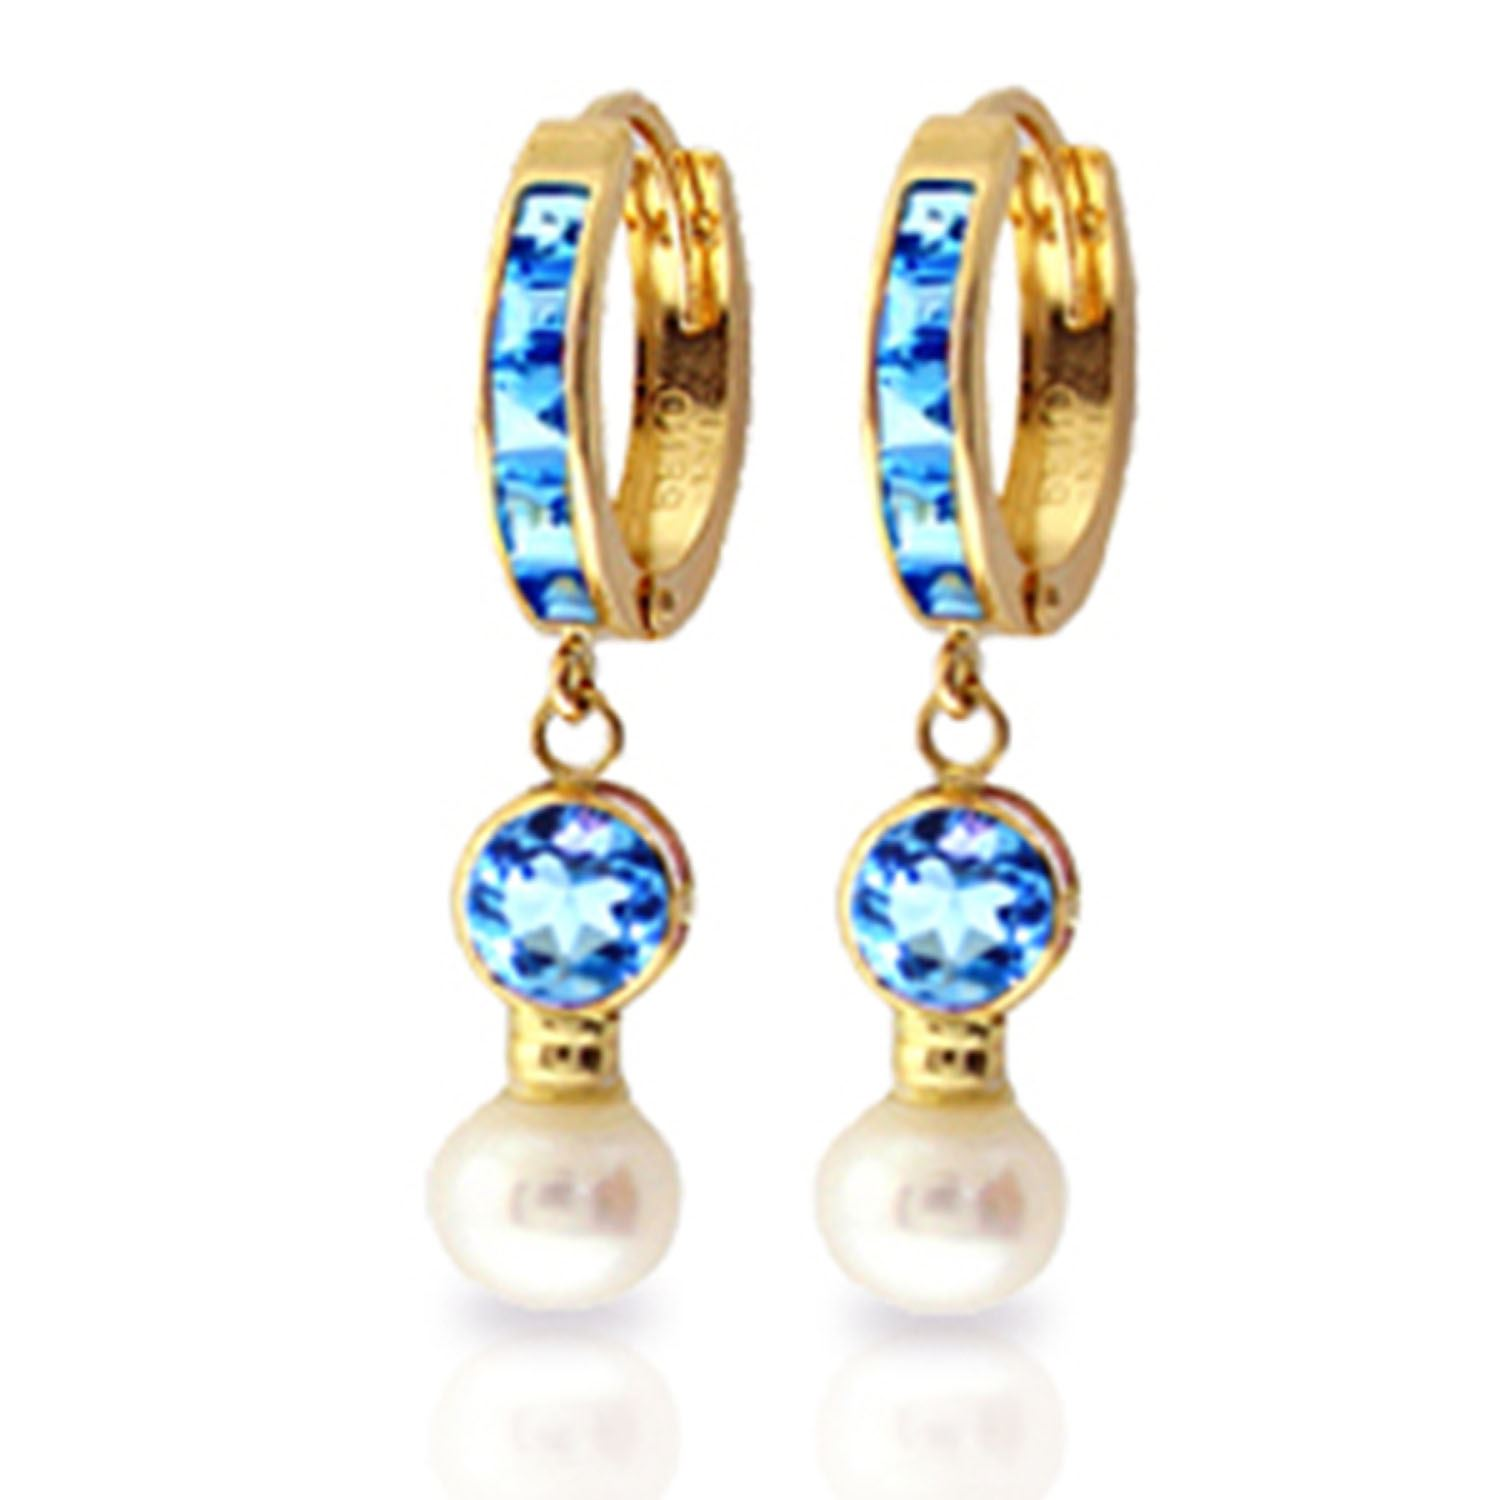 Alarri 14k Gold Huggie Earring With Pearls Blue Topazes